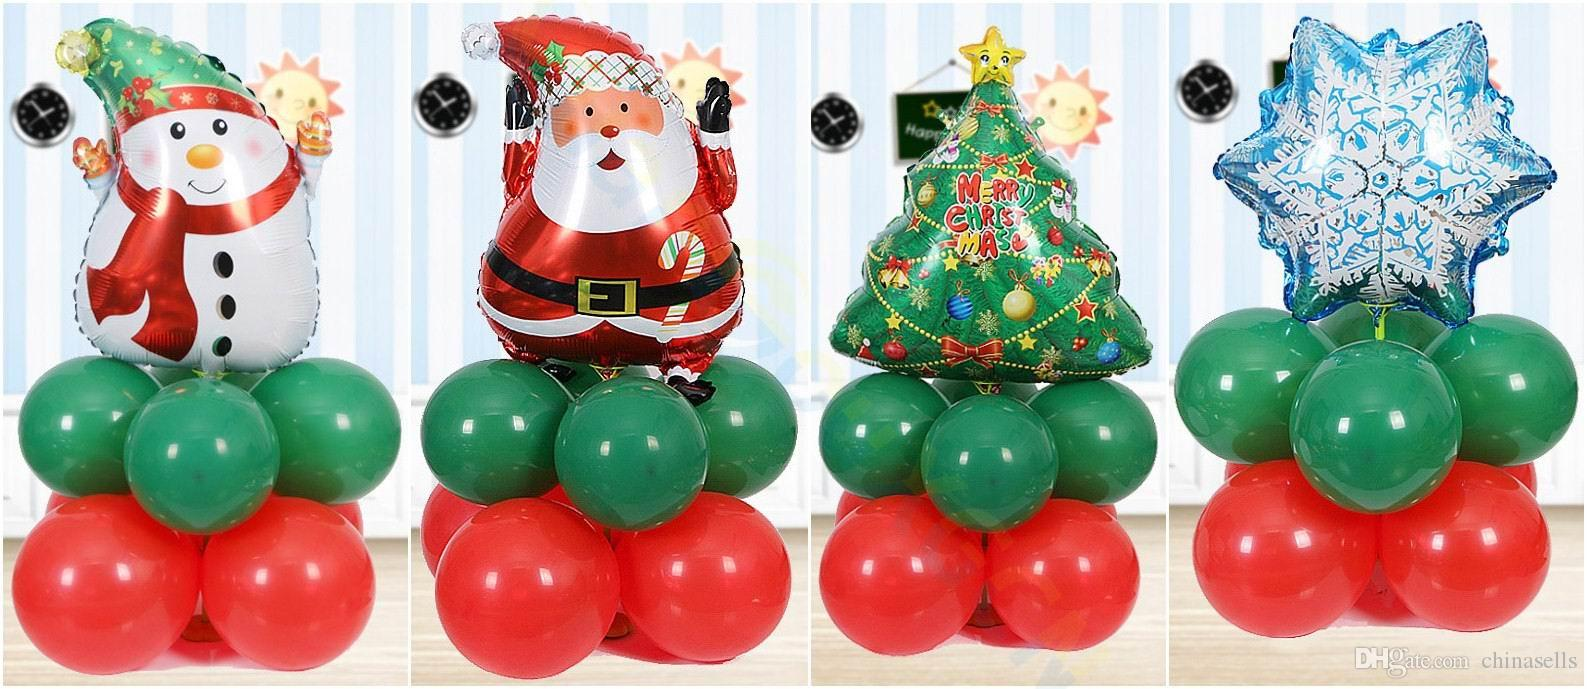 Christmas Tree Balloon.Christmas Decorations Xmas Small Inflatable Aluminum Balloon Column Set Store Hotel Party Santa Snowman Tree Road Lead Prop Christmas Decor Online